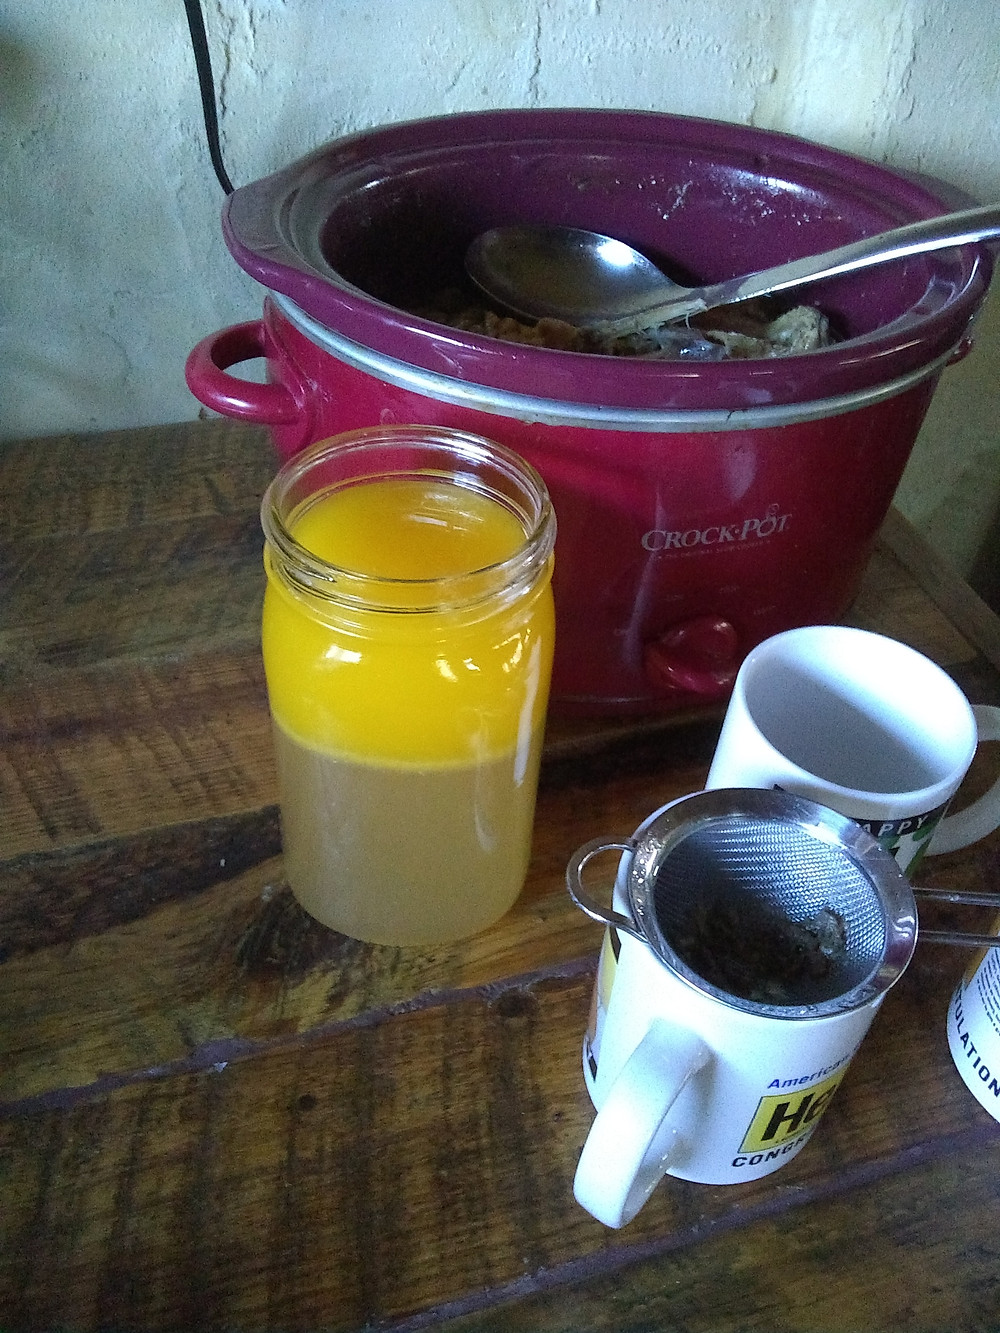 Making bone broth out of home-raised meat